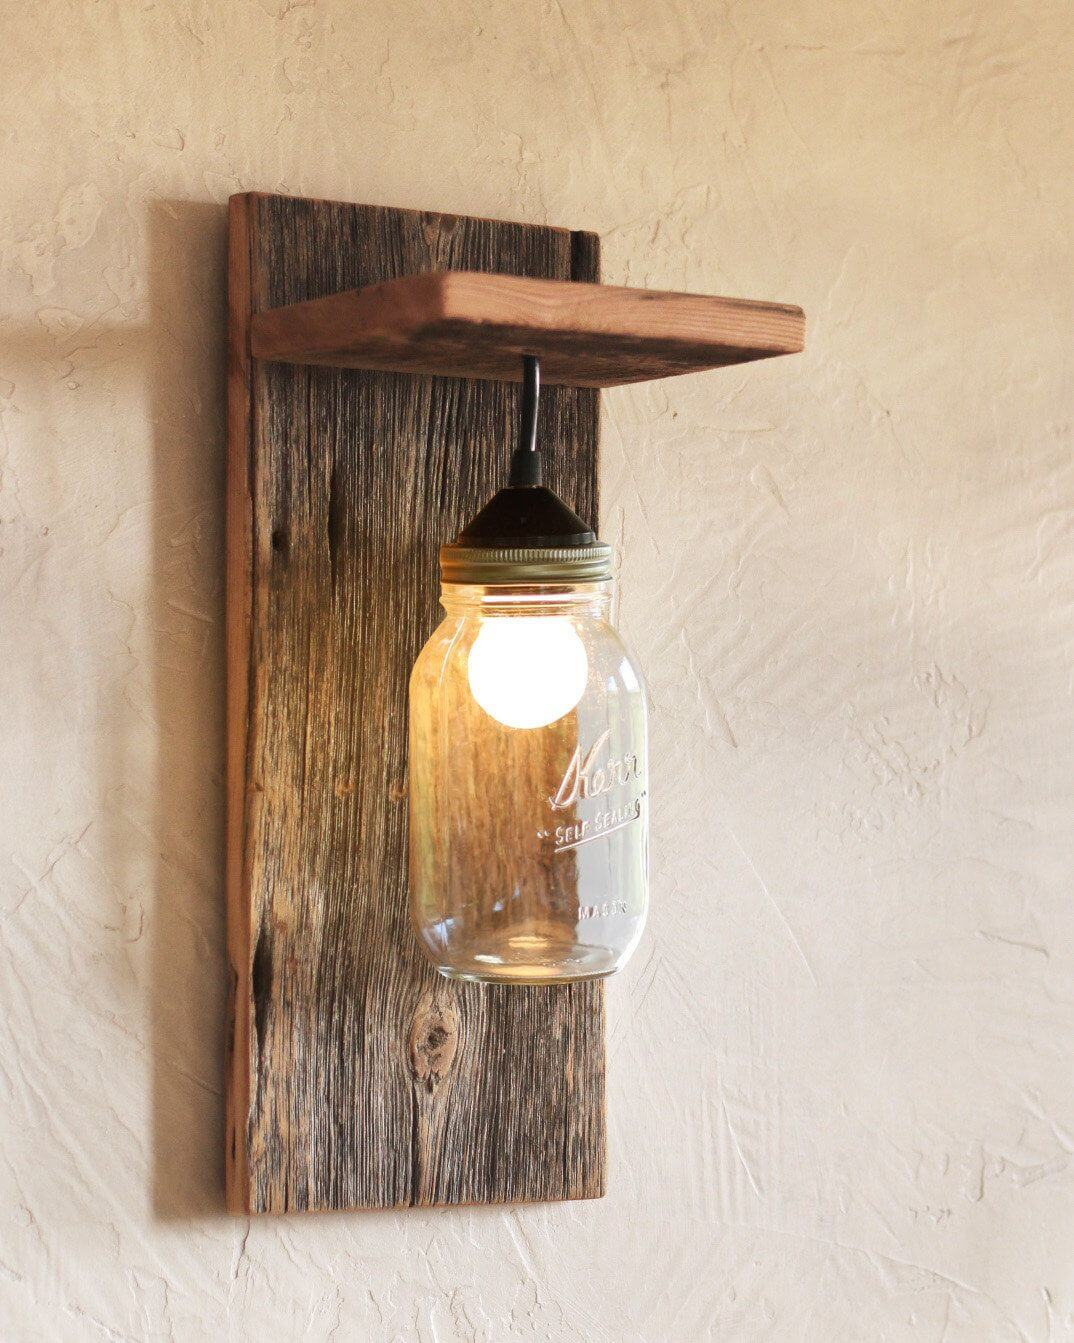 Raw Wood Wall Sconce With Mason Jar